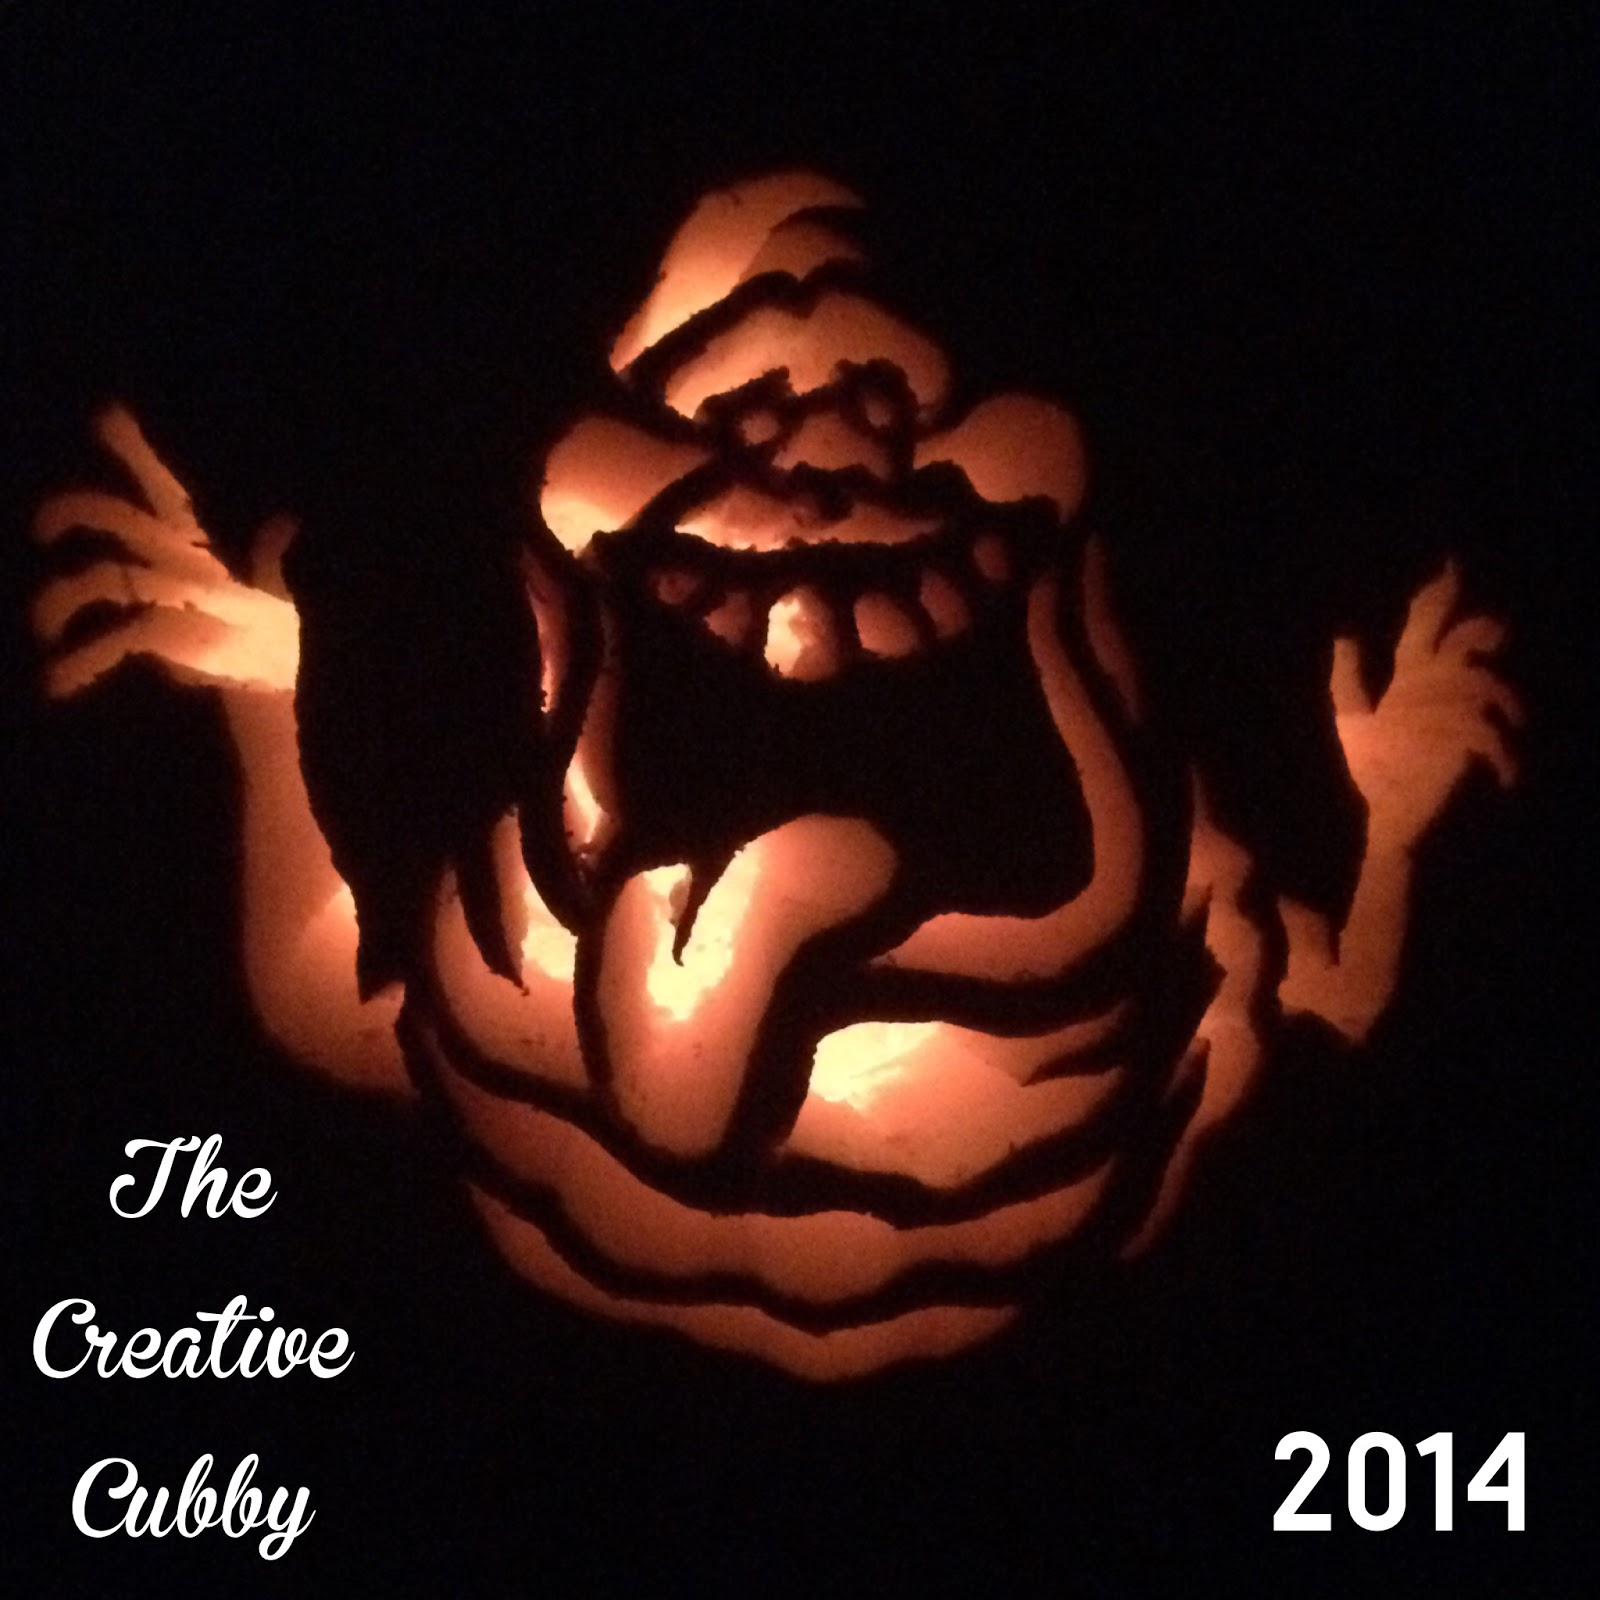 The creative cubby pumpkin carving gallery